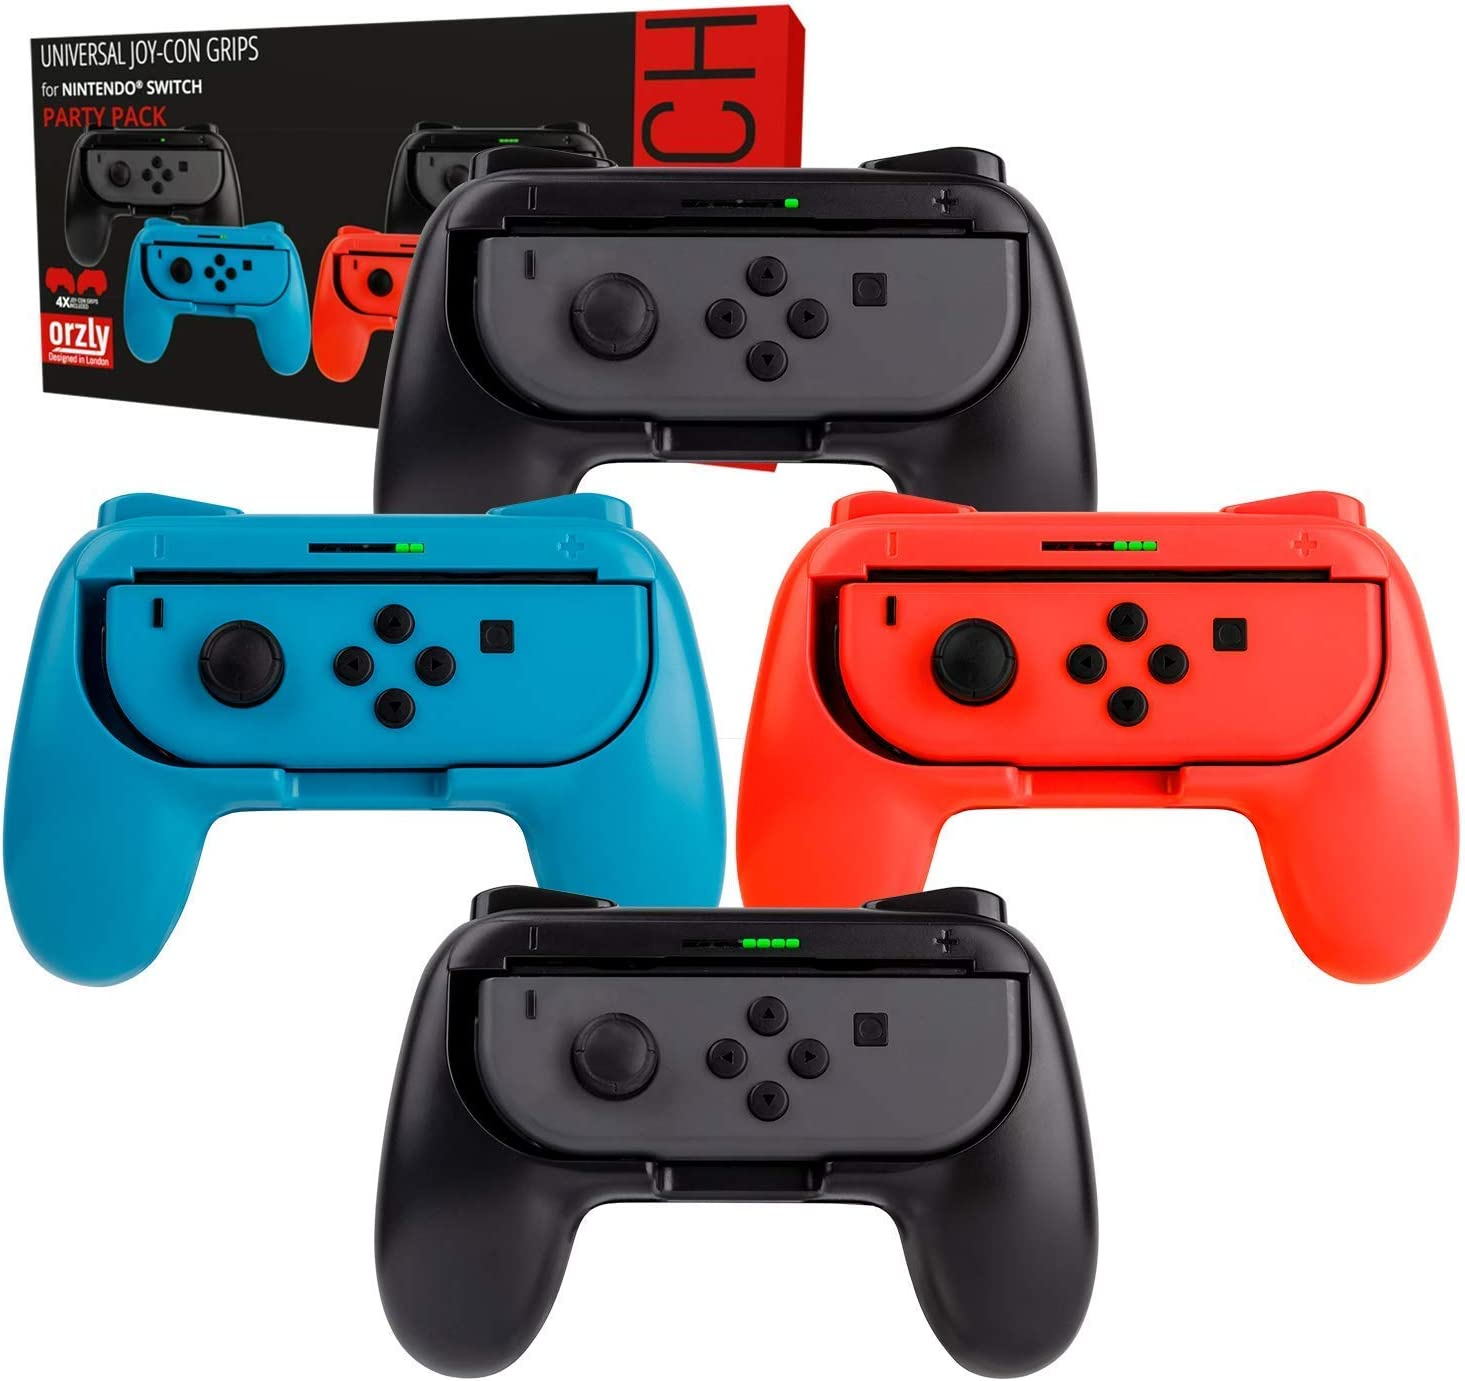 Orzly Switch Mandos Grip Joy-con (Party Pack de 4 Mandos Compatibles con Super Smash Bros Ultimate para Nintendo Switch) 4 Mandos Grip para Juegos Multijugador (1x Rojo, 1xAzul, 2X Negros): Amazon.es: Electrónica